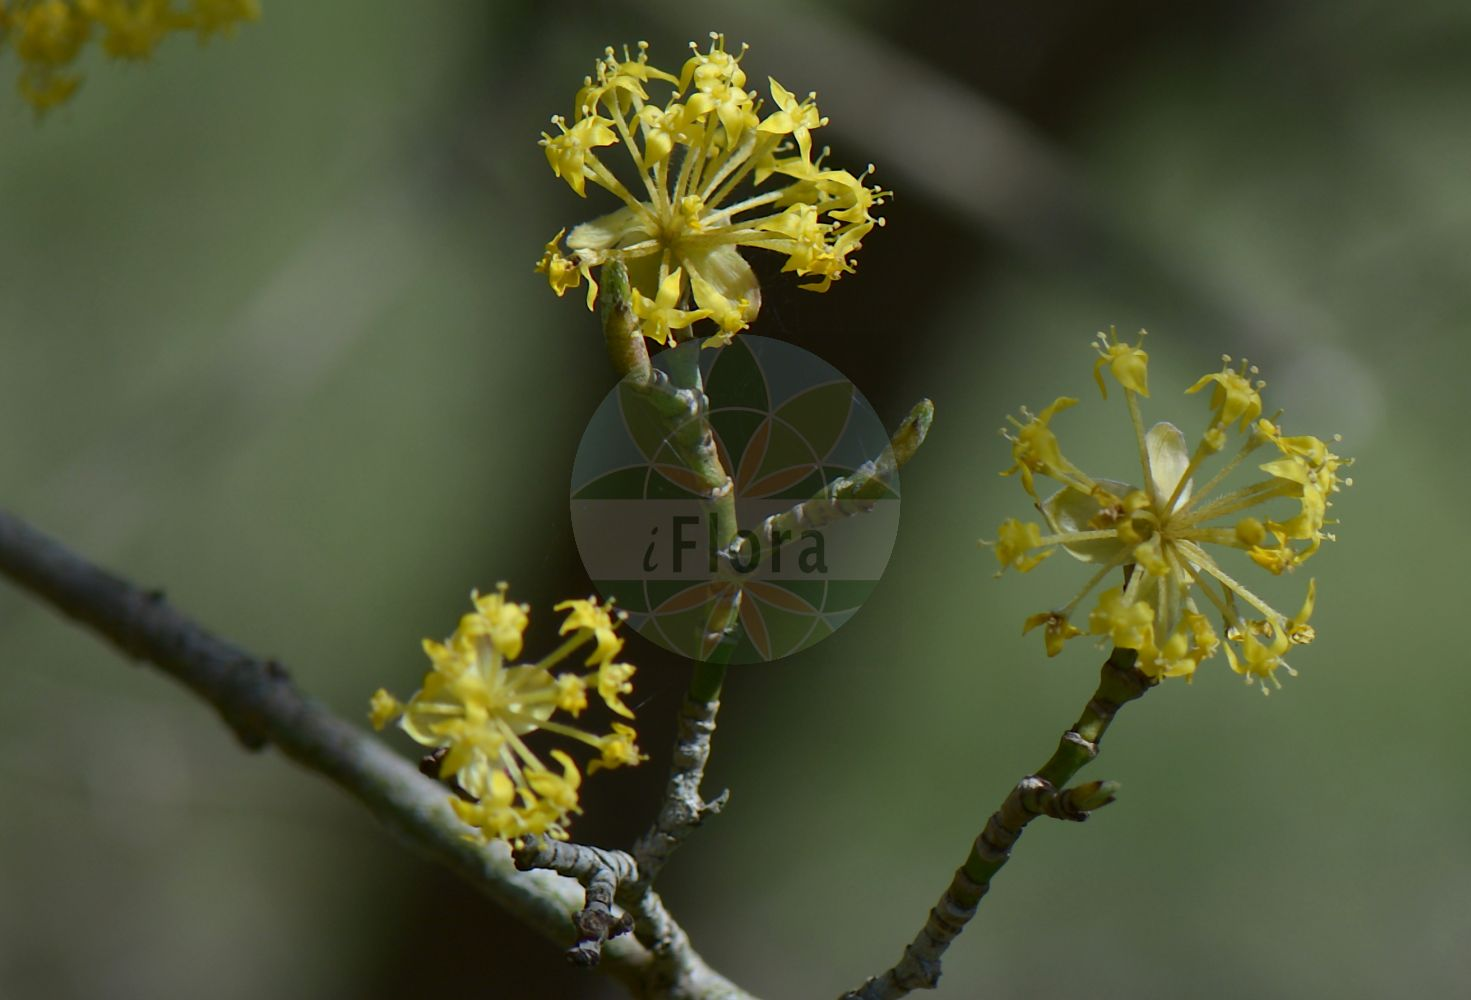 Foto von Cornus mas (Kornelkirsche - Cornelian-cherry). Das Bild zeigt Zweig und Bluete. Das Foto wurde in Goettingen, Niedersachsen, Deutschland aufgenommen. ---- Photo of Cornus mas (Kornelkirsche - Cornelian-cherry).The image is showing twig and flower.The picture was taken in Goettingen, Lower Saxony, Germany.(Cornus mas,Kornelkirsche,Cornelian-cherry,Cornus erythrocarpa,Cornus flava,Cornus homerica,cula,Cornus nudiflora,Cornus praecox,Cornus vernalis,Eukrania mascula,Macrocarpium mas,Gelber Hartriegel,Gelber Hornstrauch,Gelb-Hartriegel,Herlitze,Cornel Cherry,Dogwood,Male Dogwood,Cornus,Hartriegel,Cornel,Cornaceae,Hartriegelgewaechse,Dogwood family,Zweig,Bluete,twig,flower)